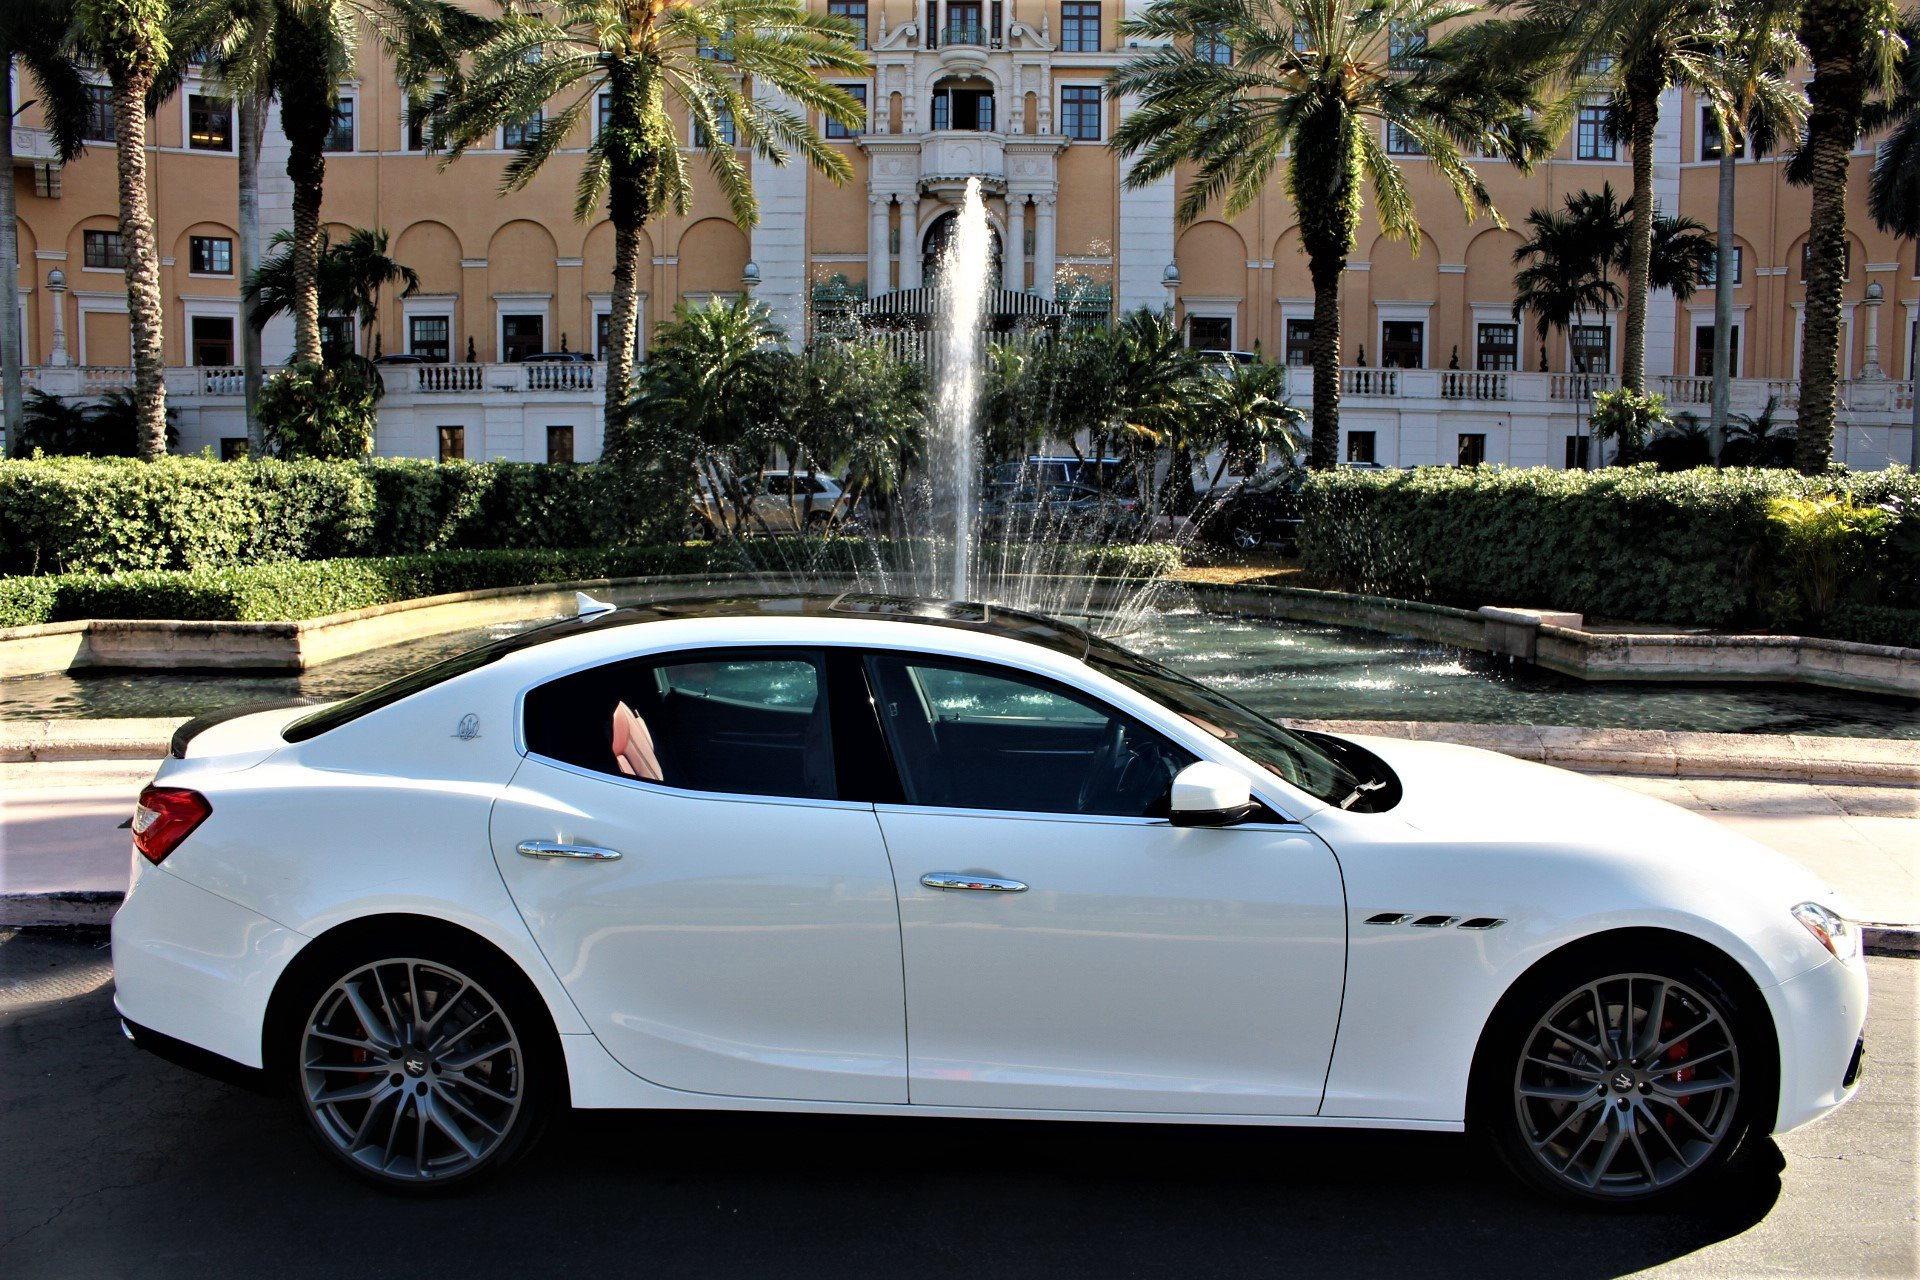 Used 2017 Maserati Ghibli S S for sale Sold at The Gables Sports Cars in Miami FL 33146 4